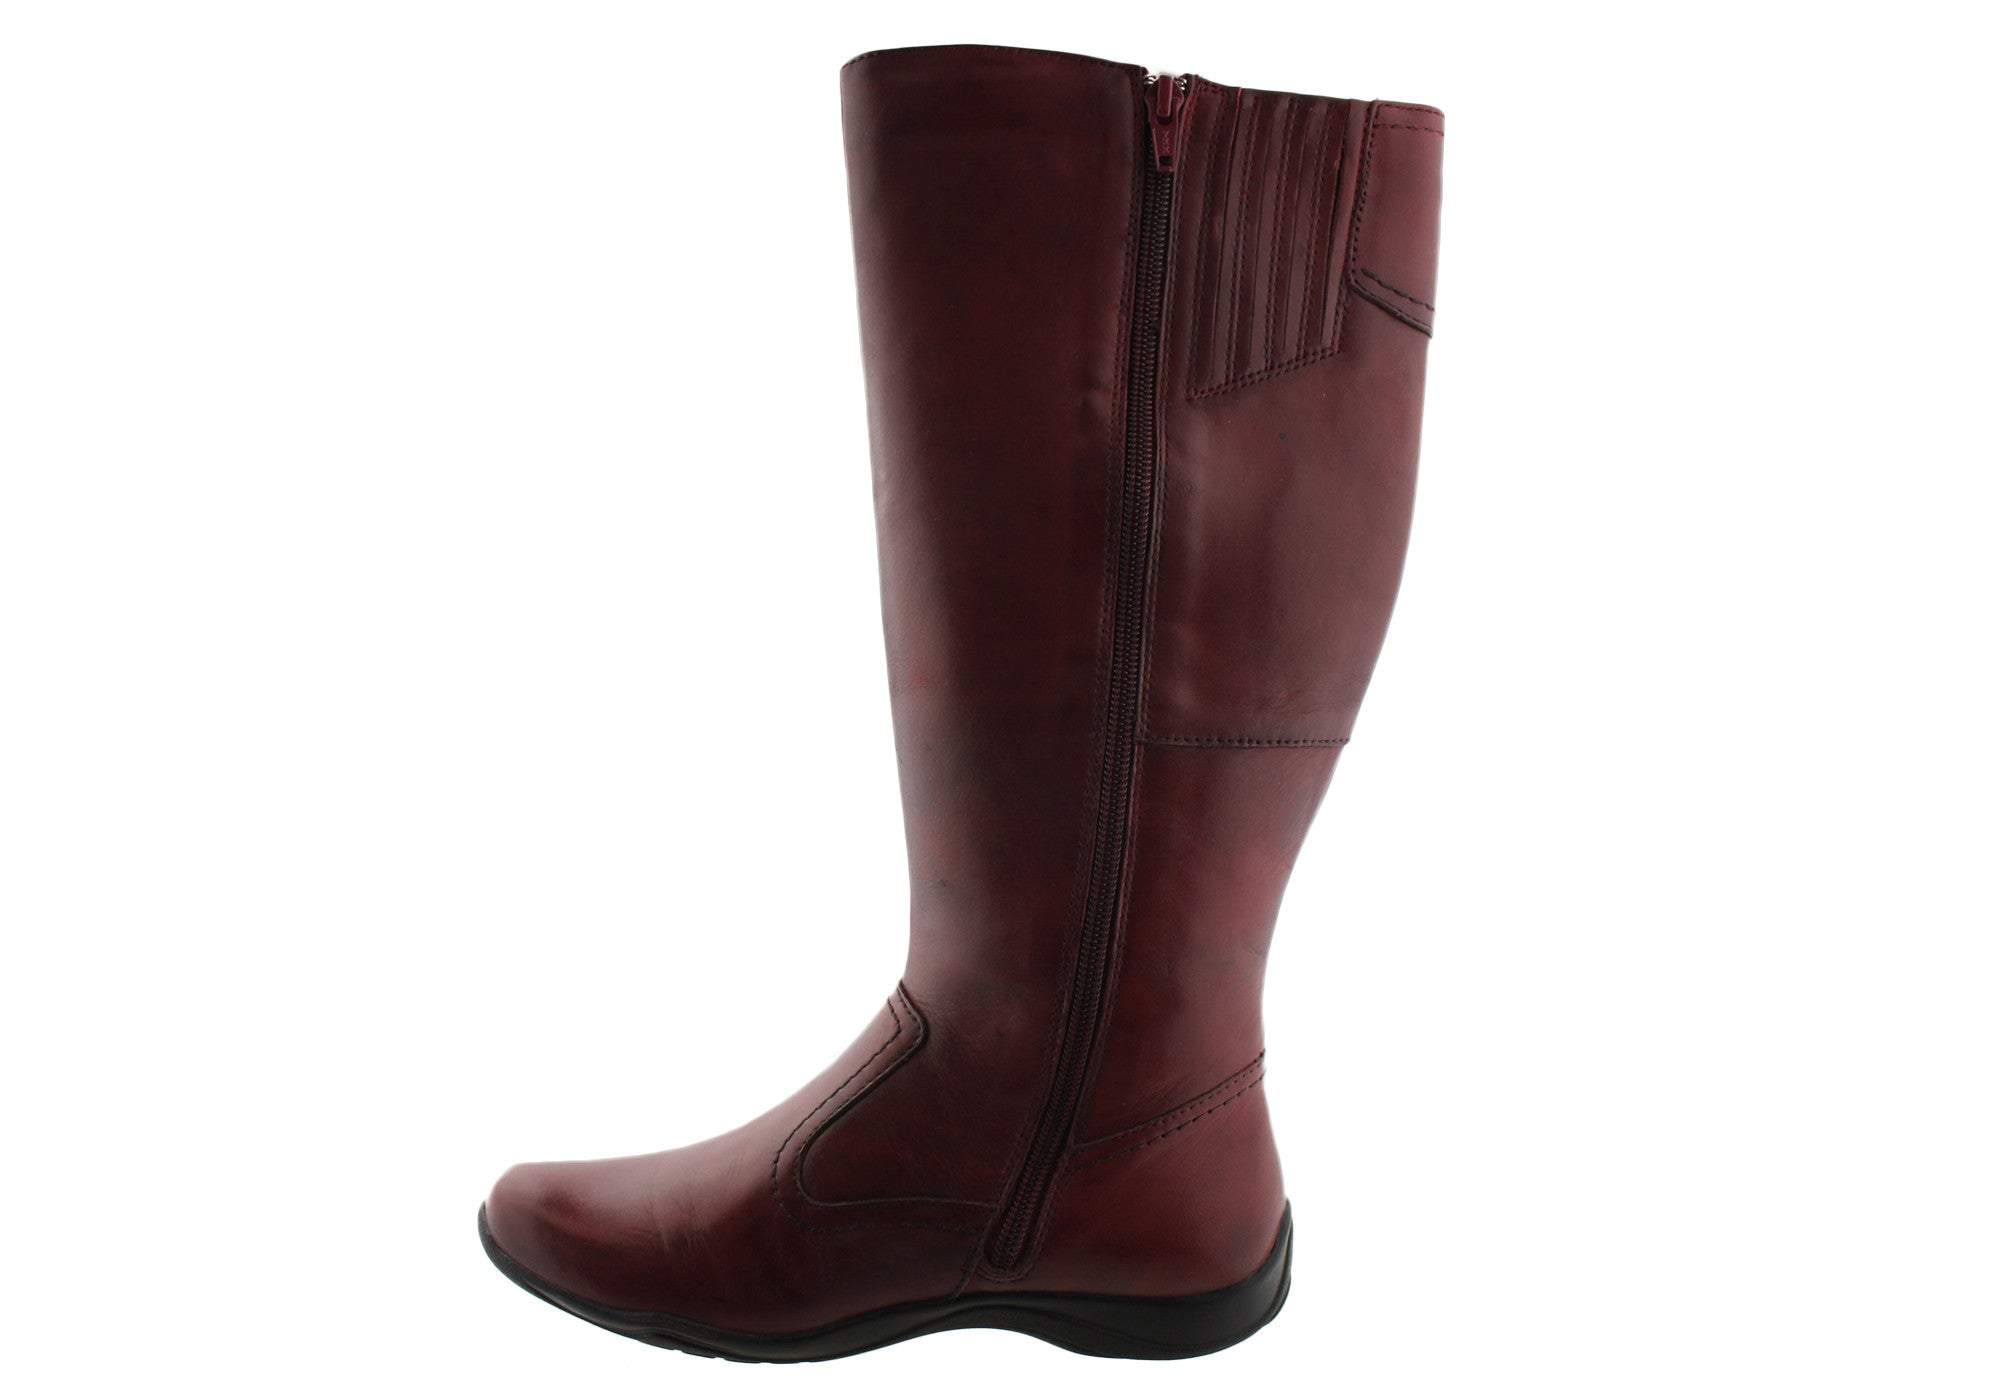 Planet Shoes Spire 2 Womens Leather Flat Heel Knee High Boots